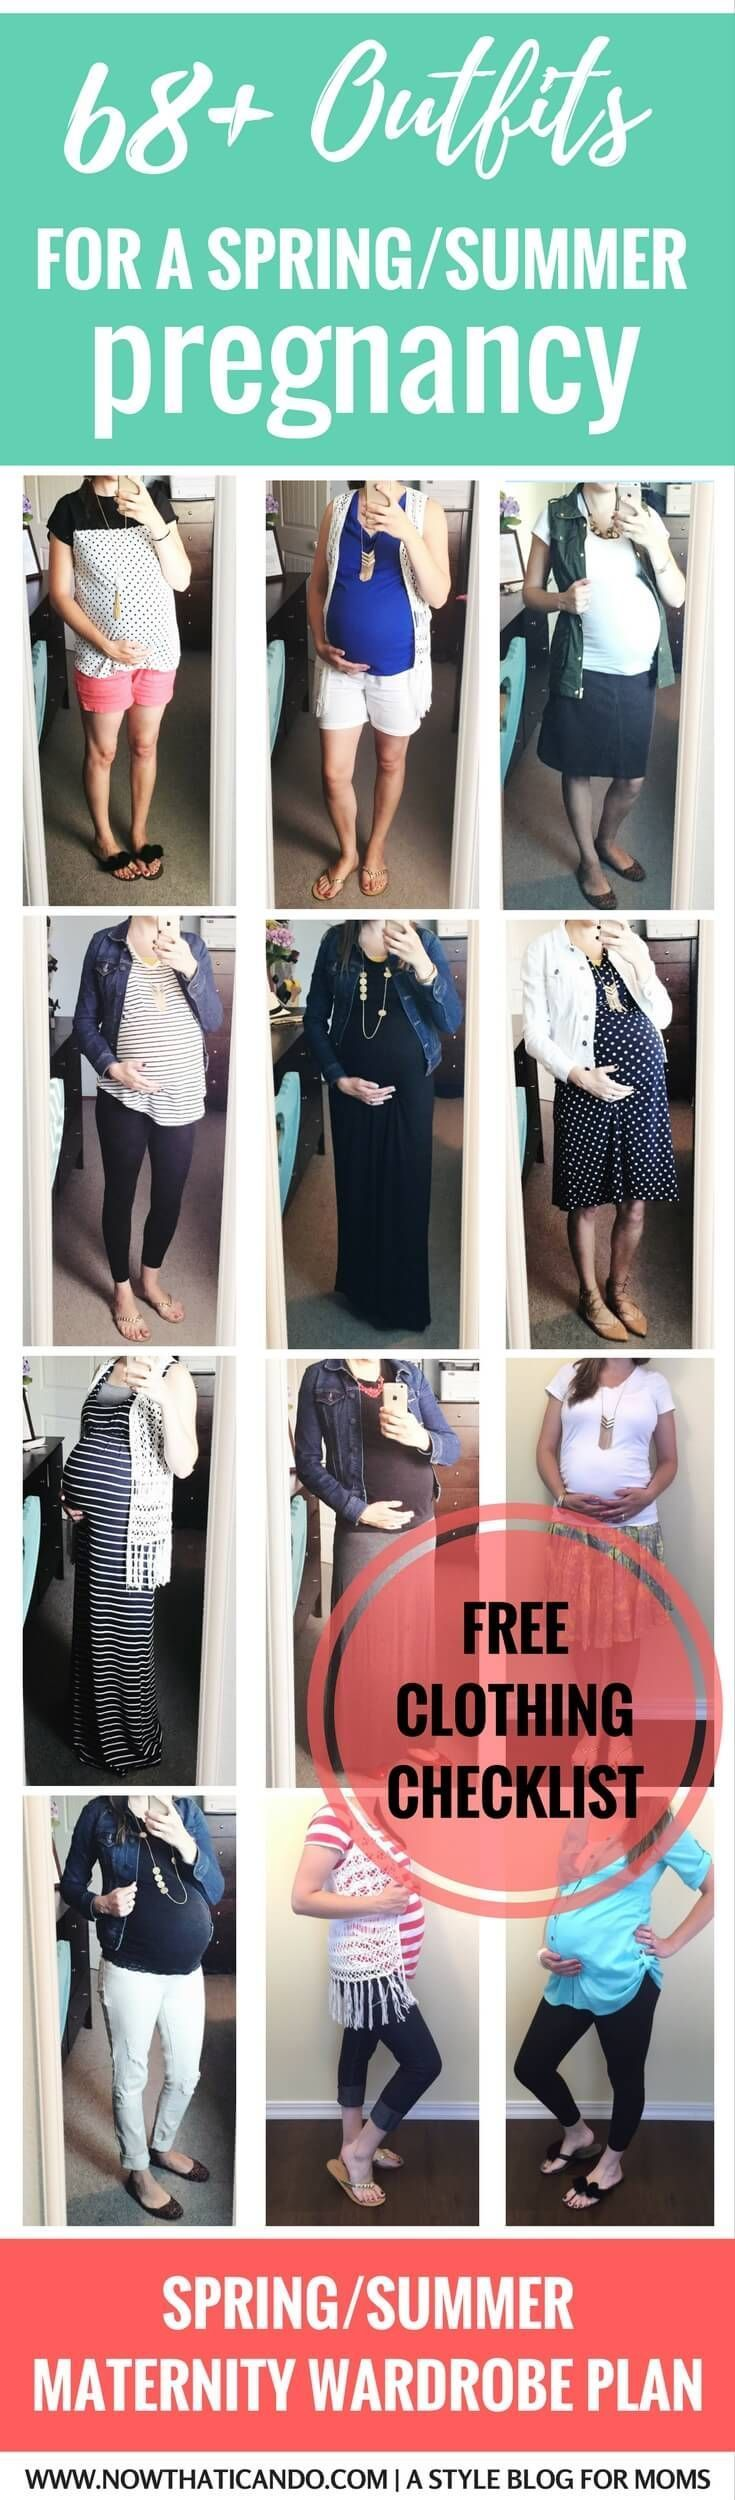 2eb36c3fe4aa2 This blog has the best maternity capsule ideas I've seen! I've always  struggled feeling cute while pregnant and these #tips and #tricks will help  my ...